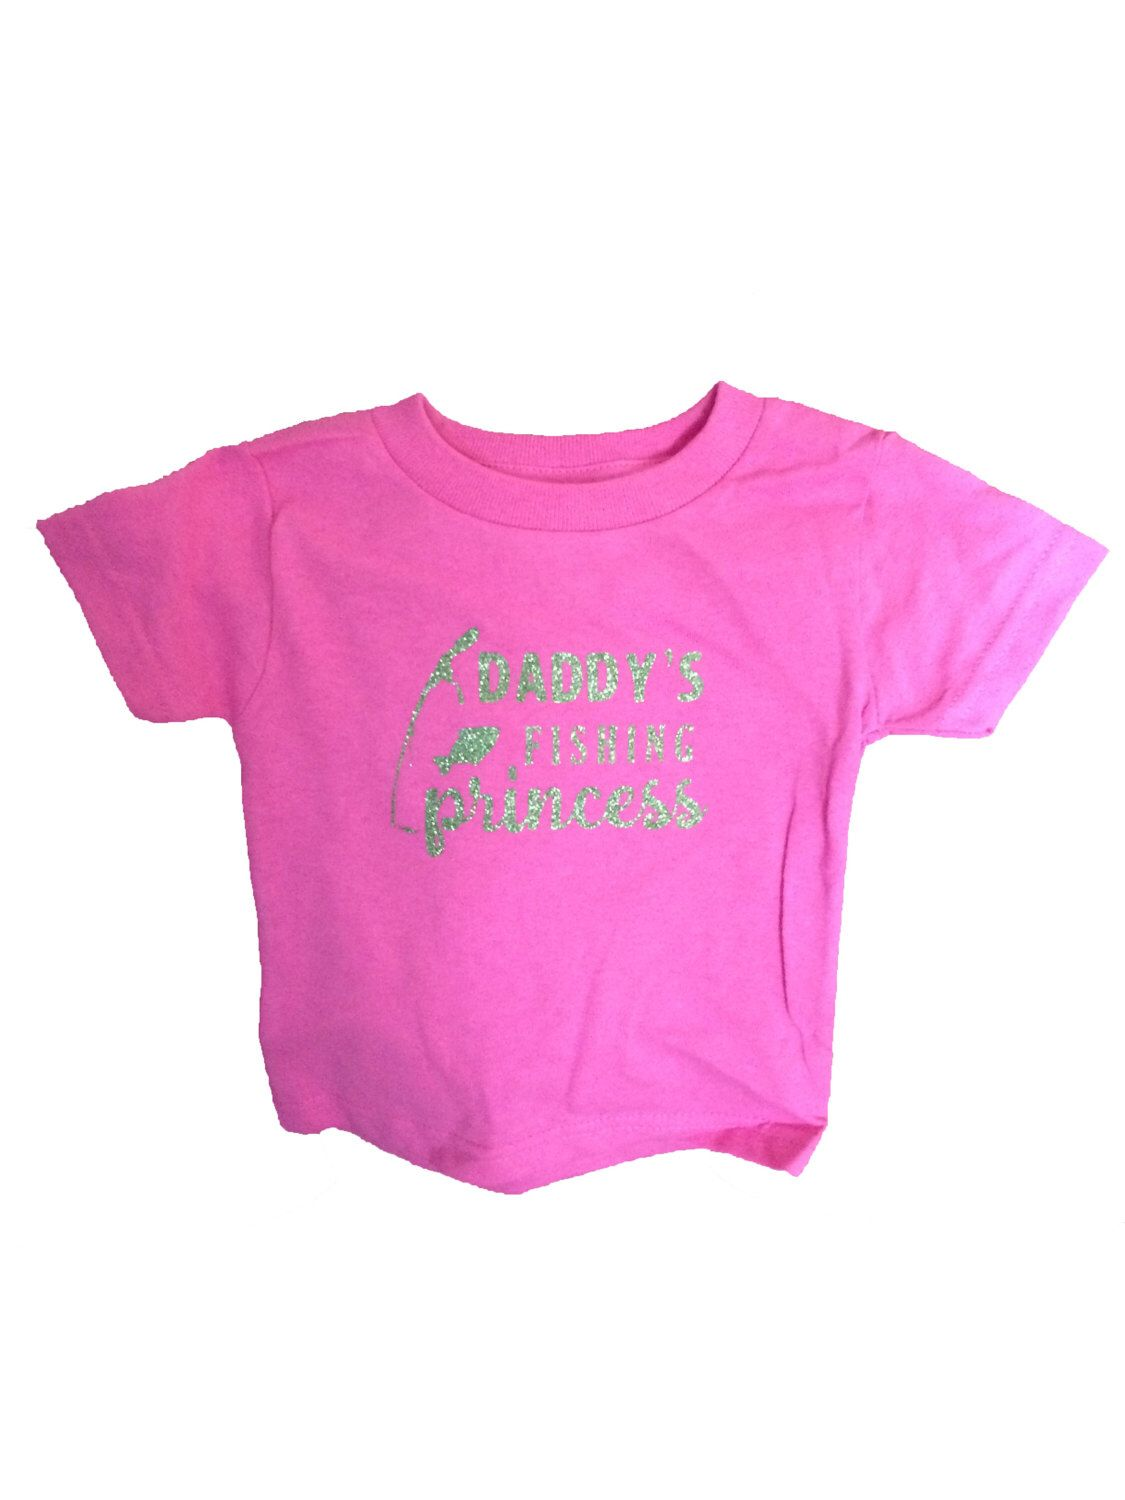 A personal favorite from my Etsy shop https://www.etsy.com/listing/260990708/girls-clothing-daddys-fishing-princess-t